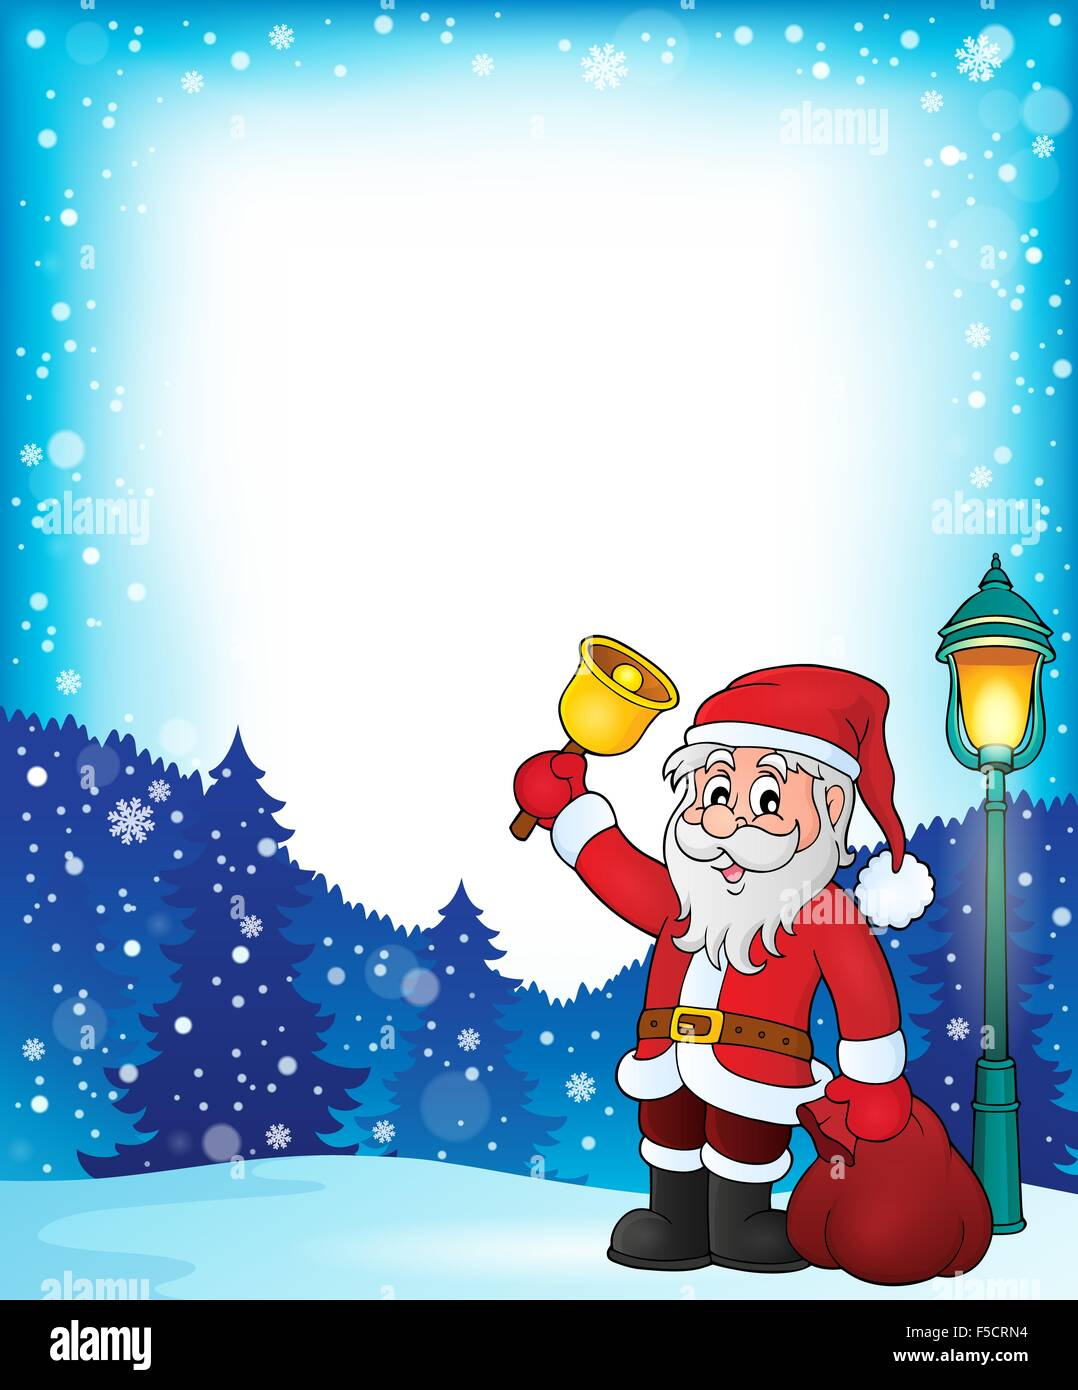 Santa Claus with bell theme frame 1 - picture illustration Stock ...